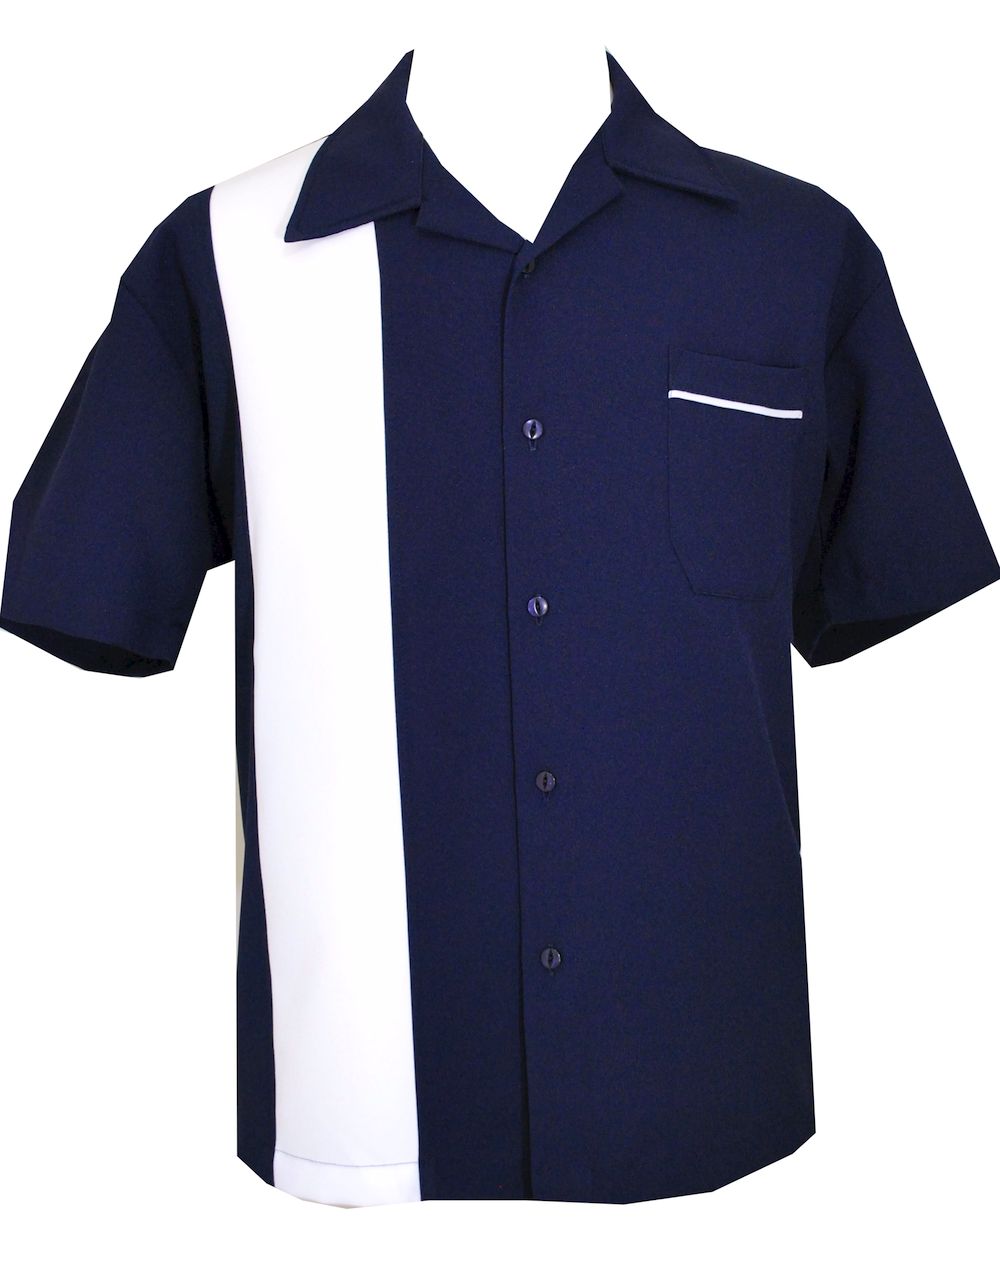 Cooler The Cooler Features That Classic White On Navy Design